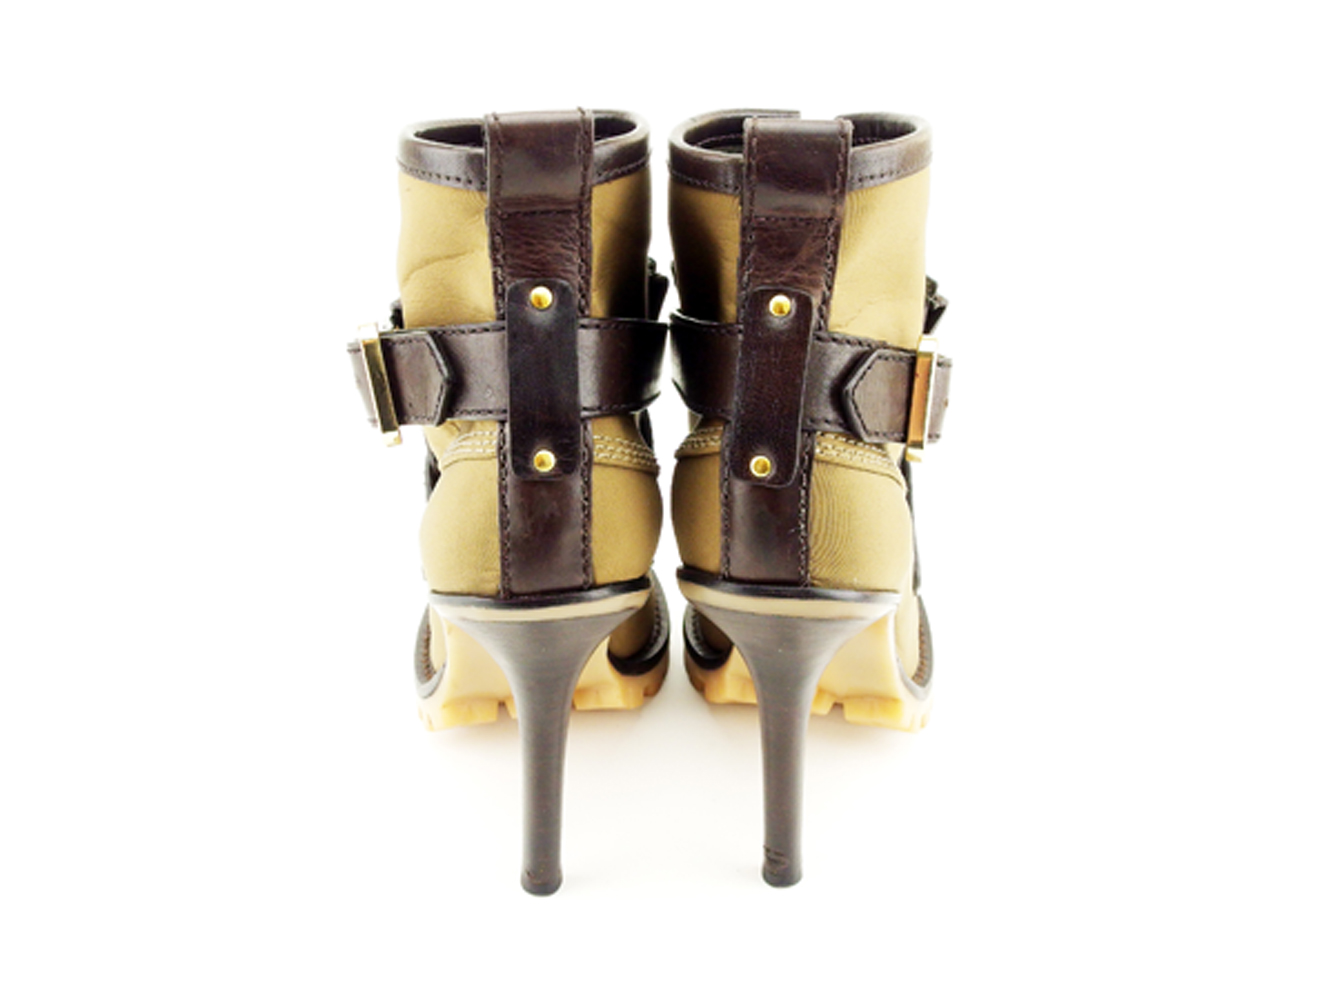 c2bad70543 ... Tolly Birch Tory Burch boots shoes shoes Lady's brown nylon X leather  boots T6862s ...